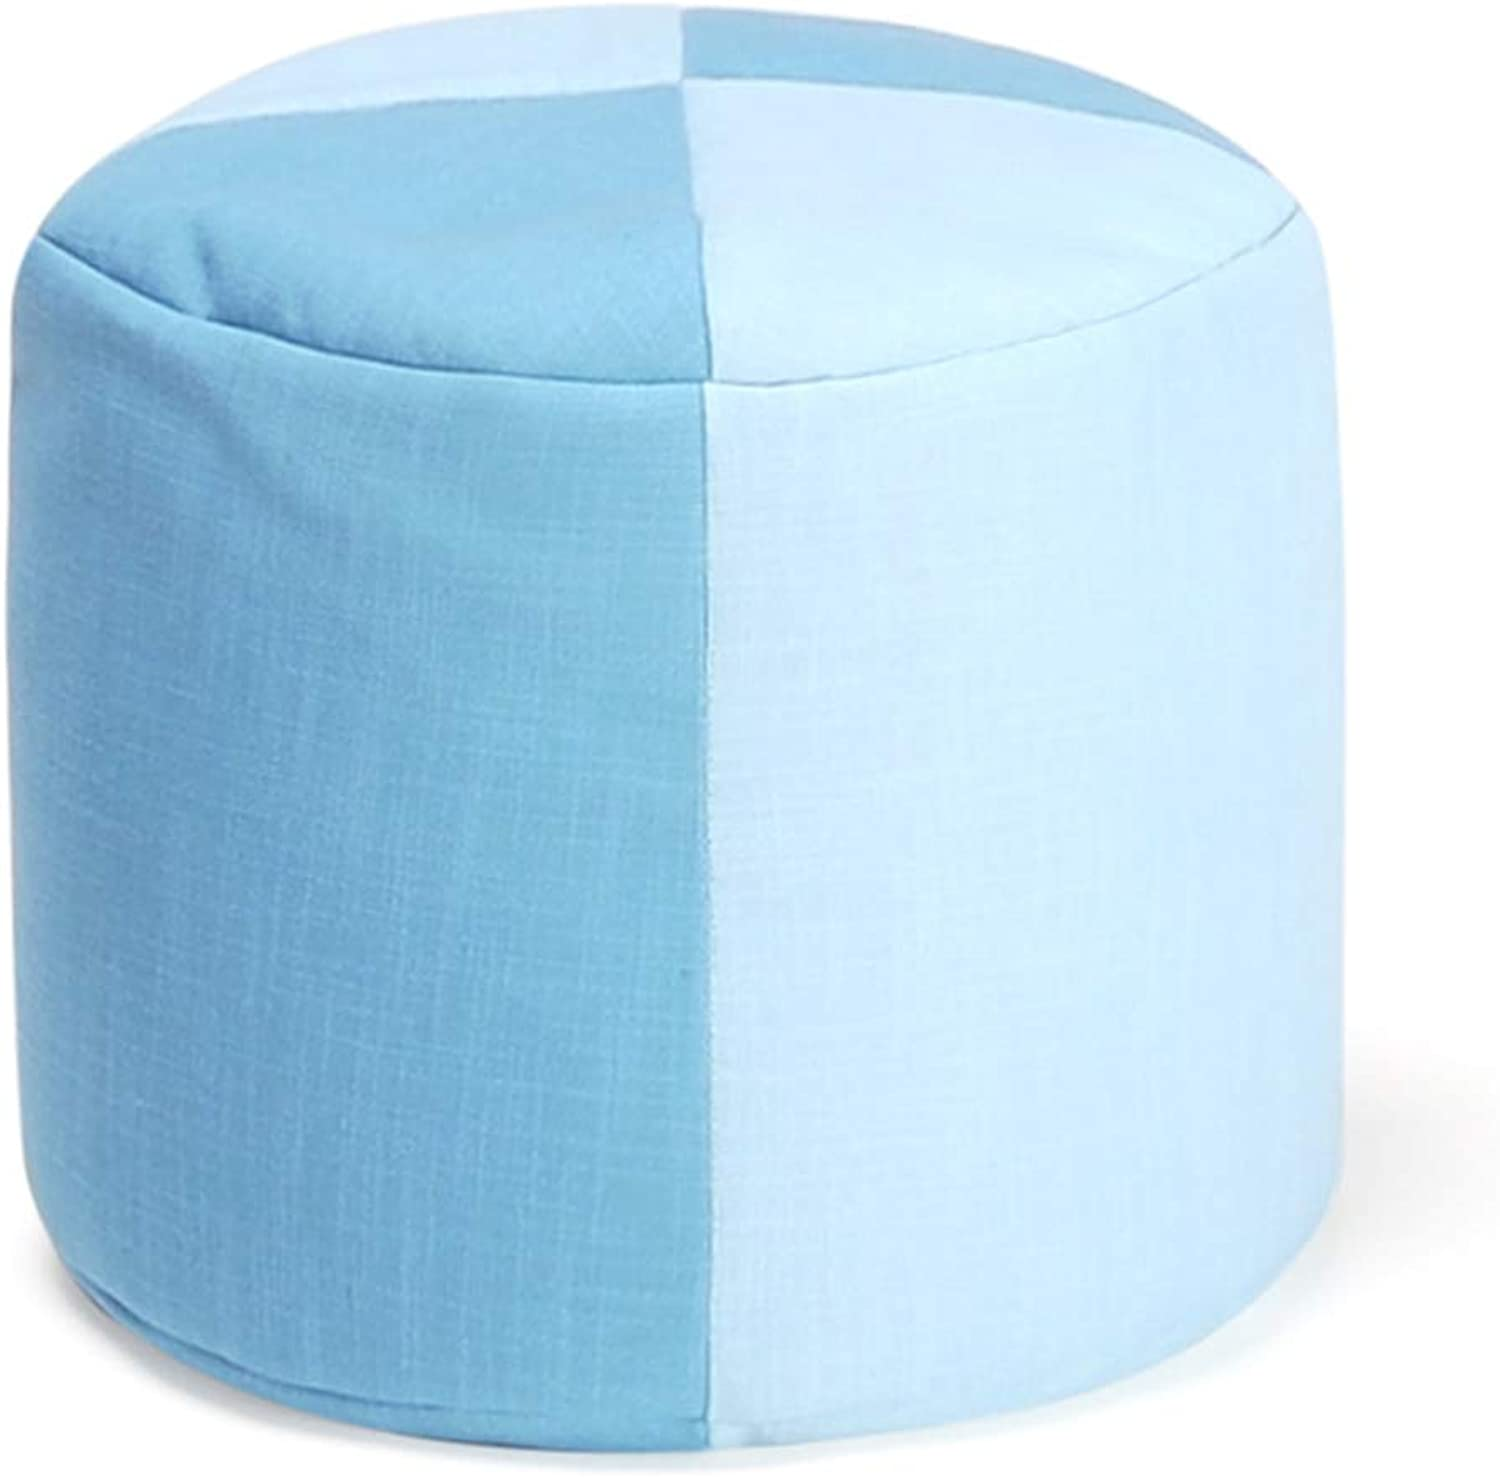 CAIJUN Footstool Multifunction Portable Environmentally Friendly Particle Filling Leisure Square Gift, 18 Styles (color   L, Size   40x35cm)